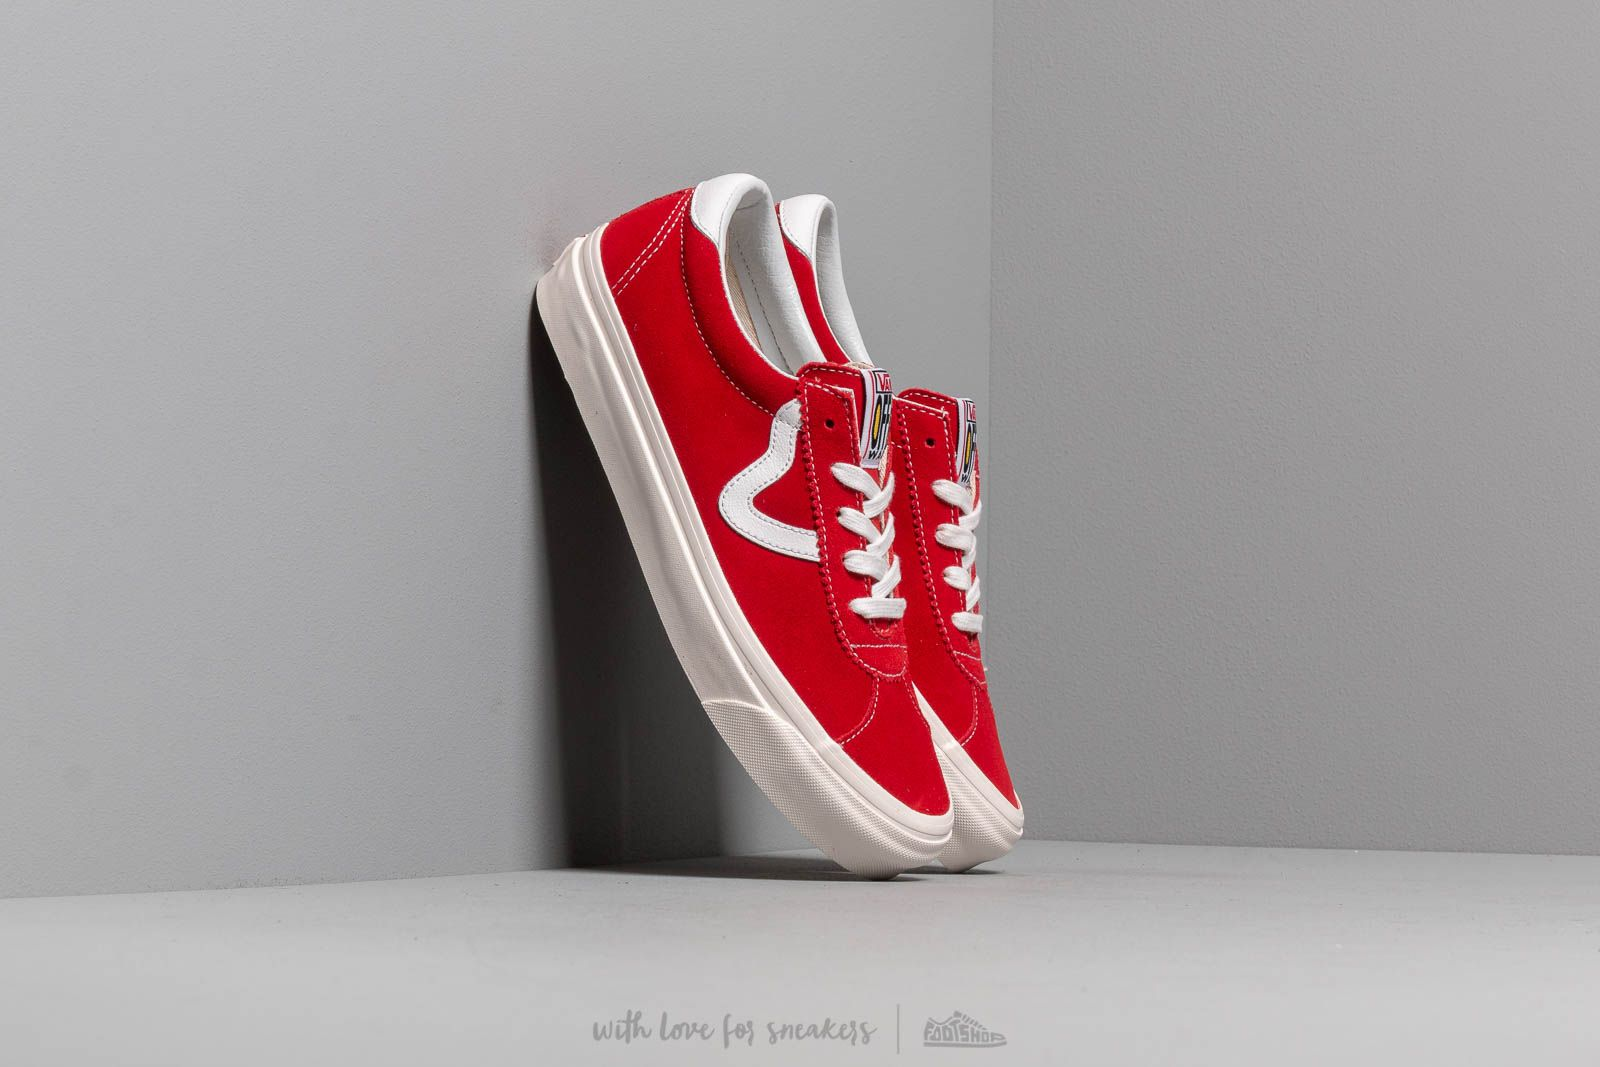 Ανδρικά παπούτσια Vans Style 73 DX (Anaheim Factory) Og Red/ White